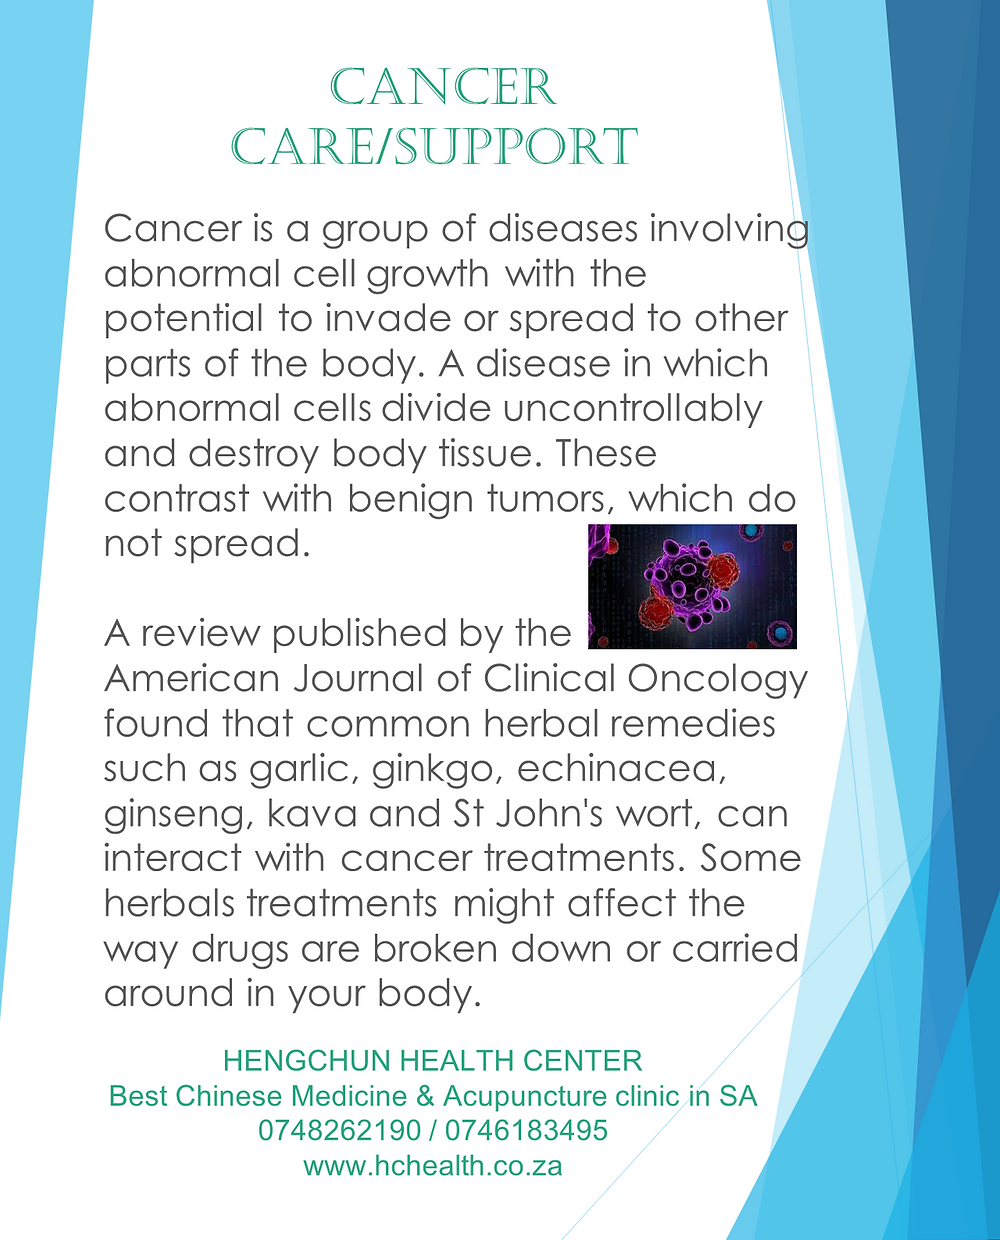 Cancer care/support